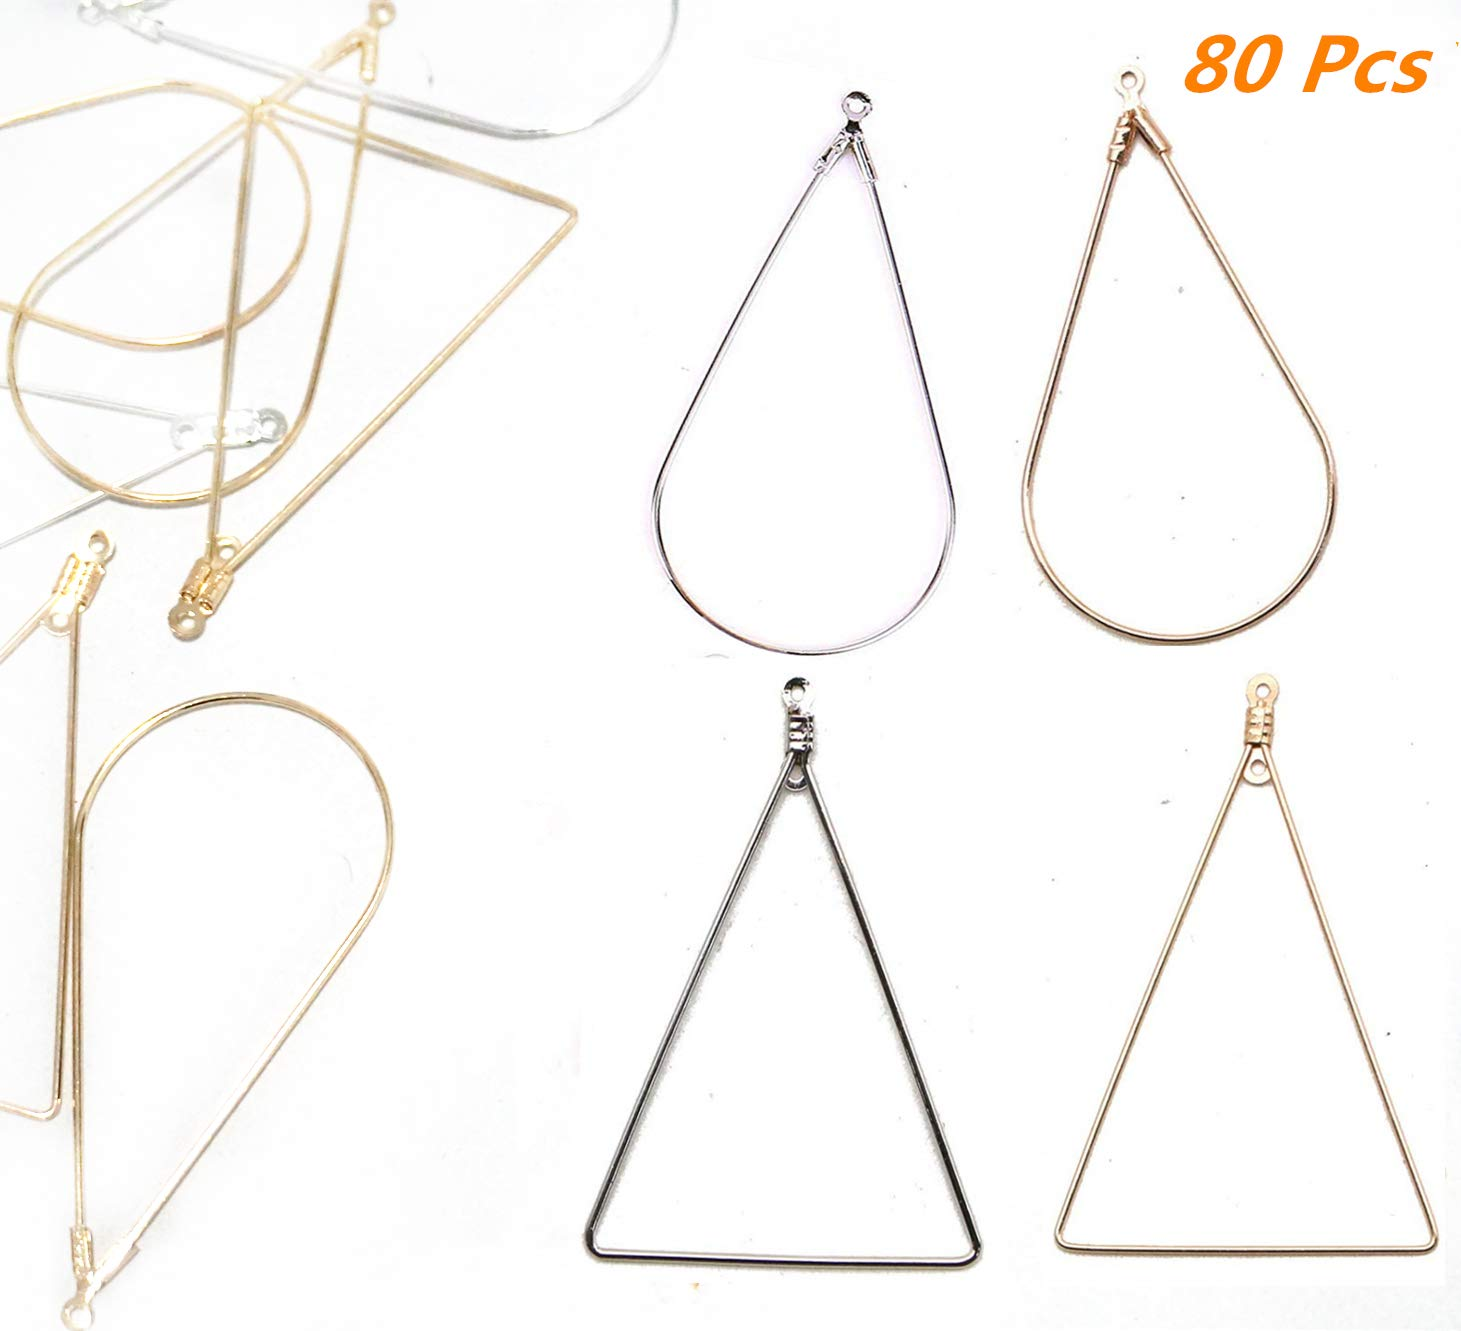 Gold//Silver Xinhongo 80 Pcs Teardrop and Triangle Beading Hoop Earring Finding with Loop Jewelry Finding for Earring Jewelry Making Earring DIY Craft 80